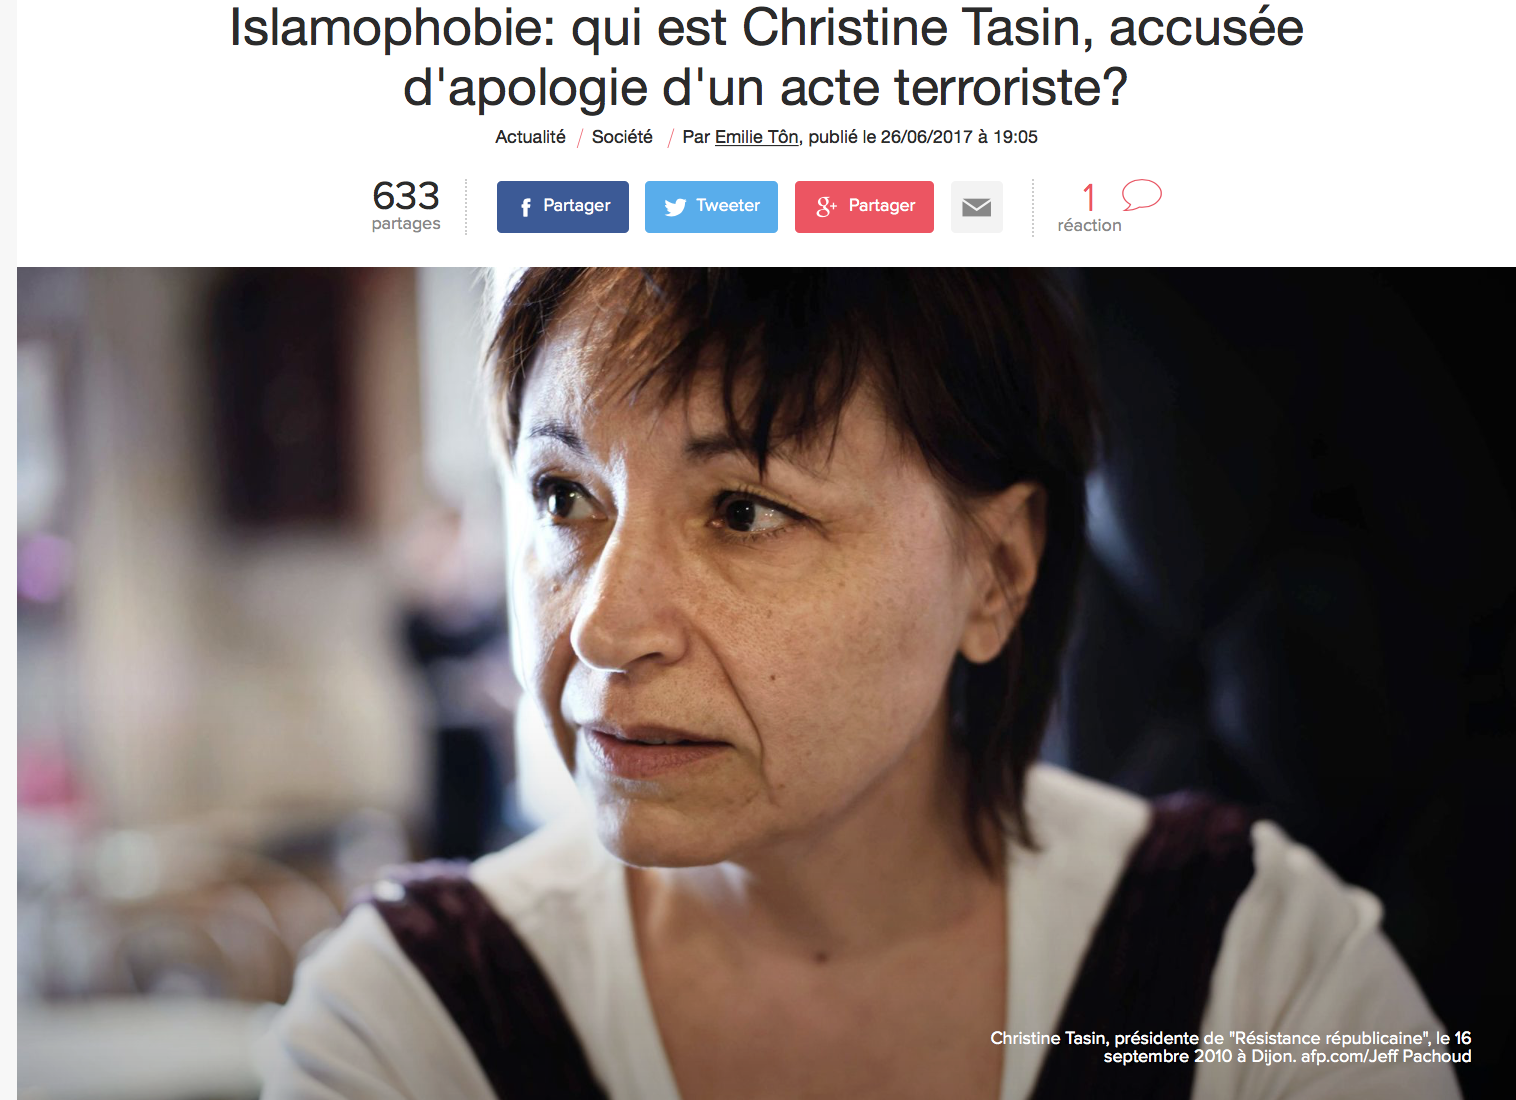 Qui est donc Emilie Tôn, journaleuse à l'Express, qui écrit un article à charge contre Christine Tasin ?